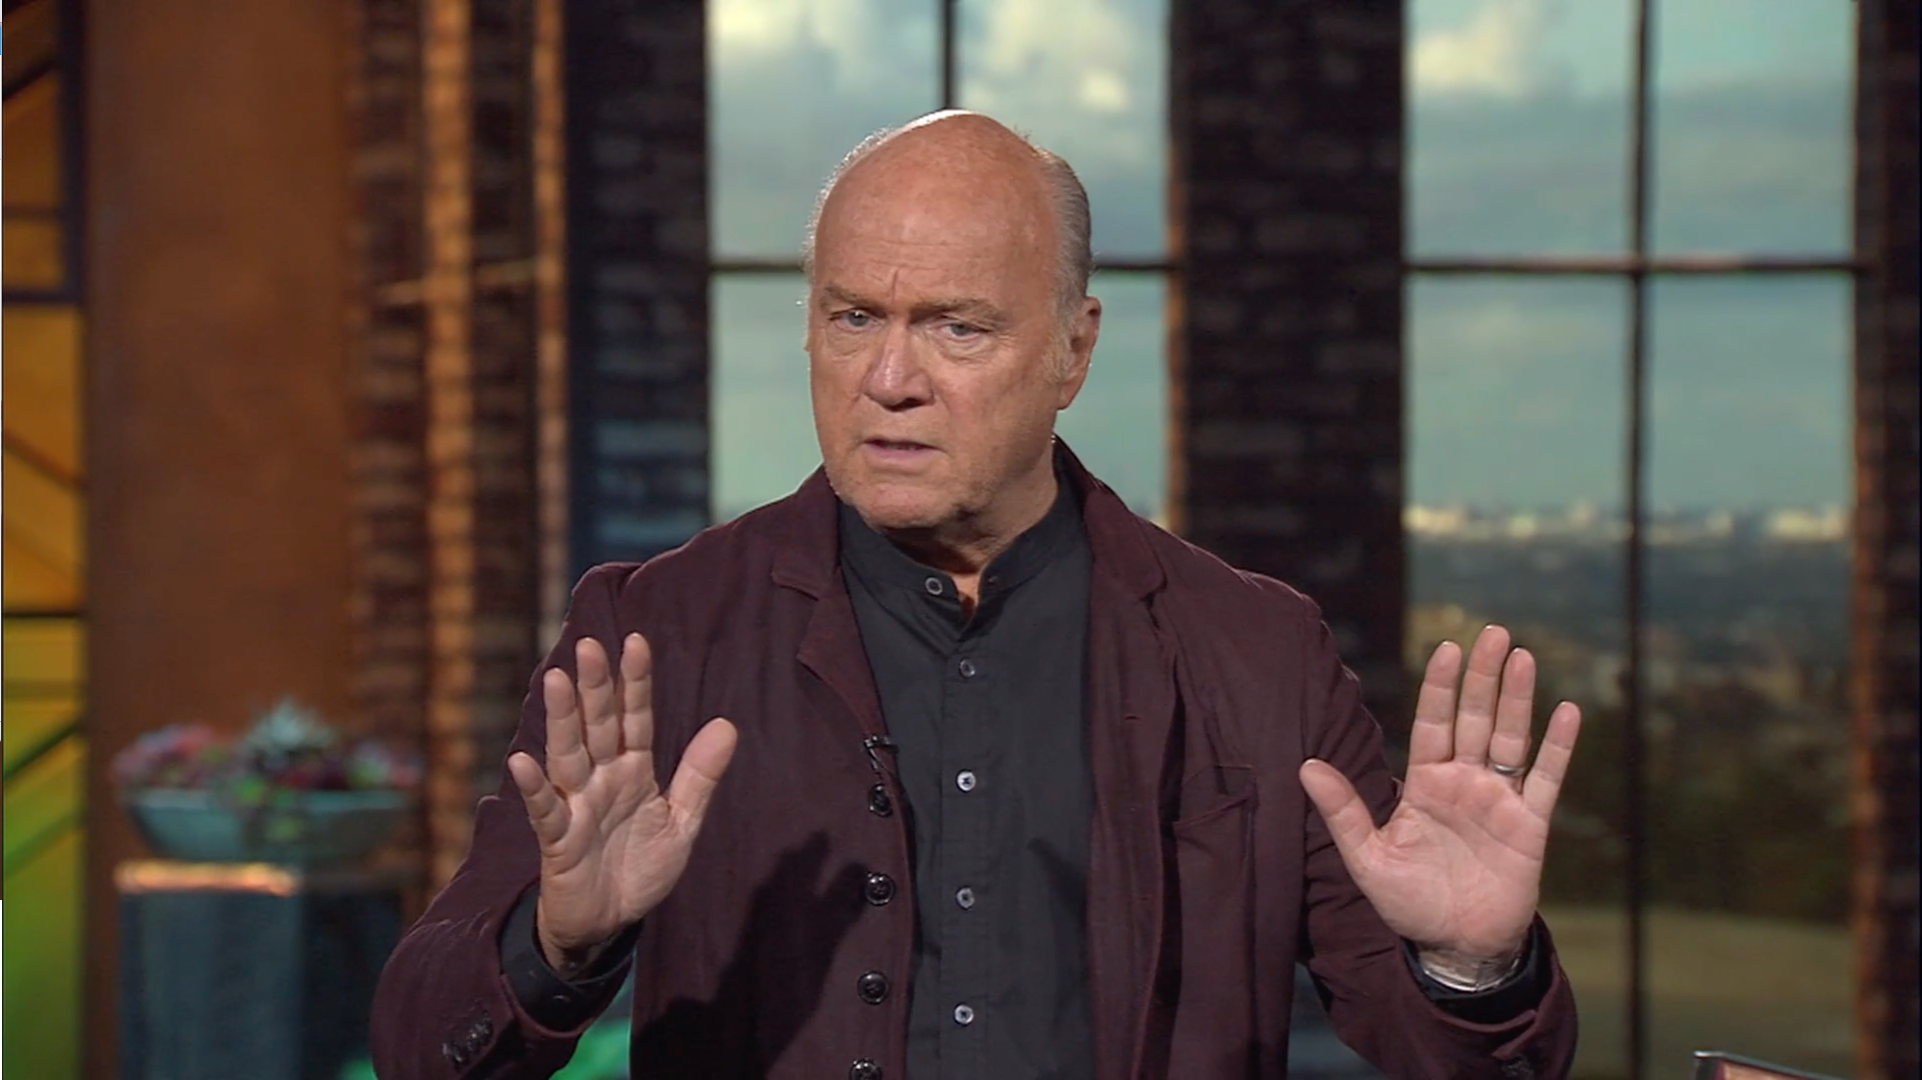 Praise | Greg Laurie - Finding Christ In Crisis | March 30, 2020